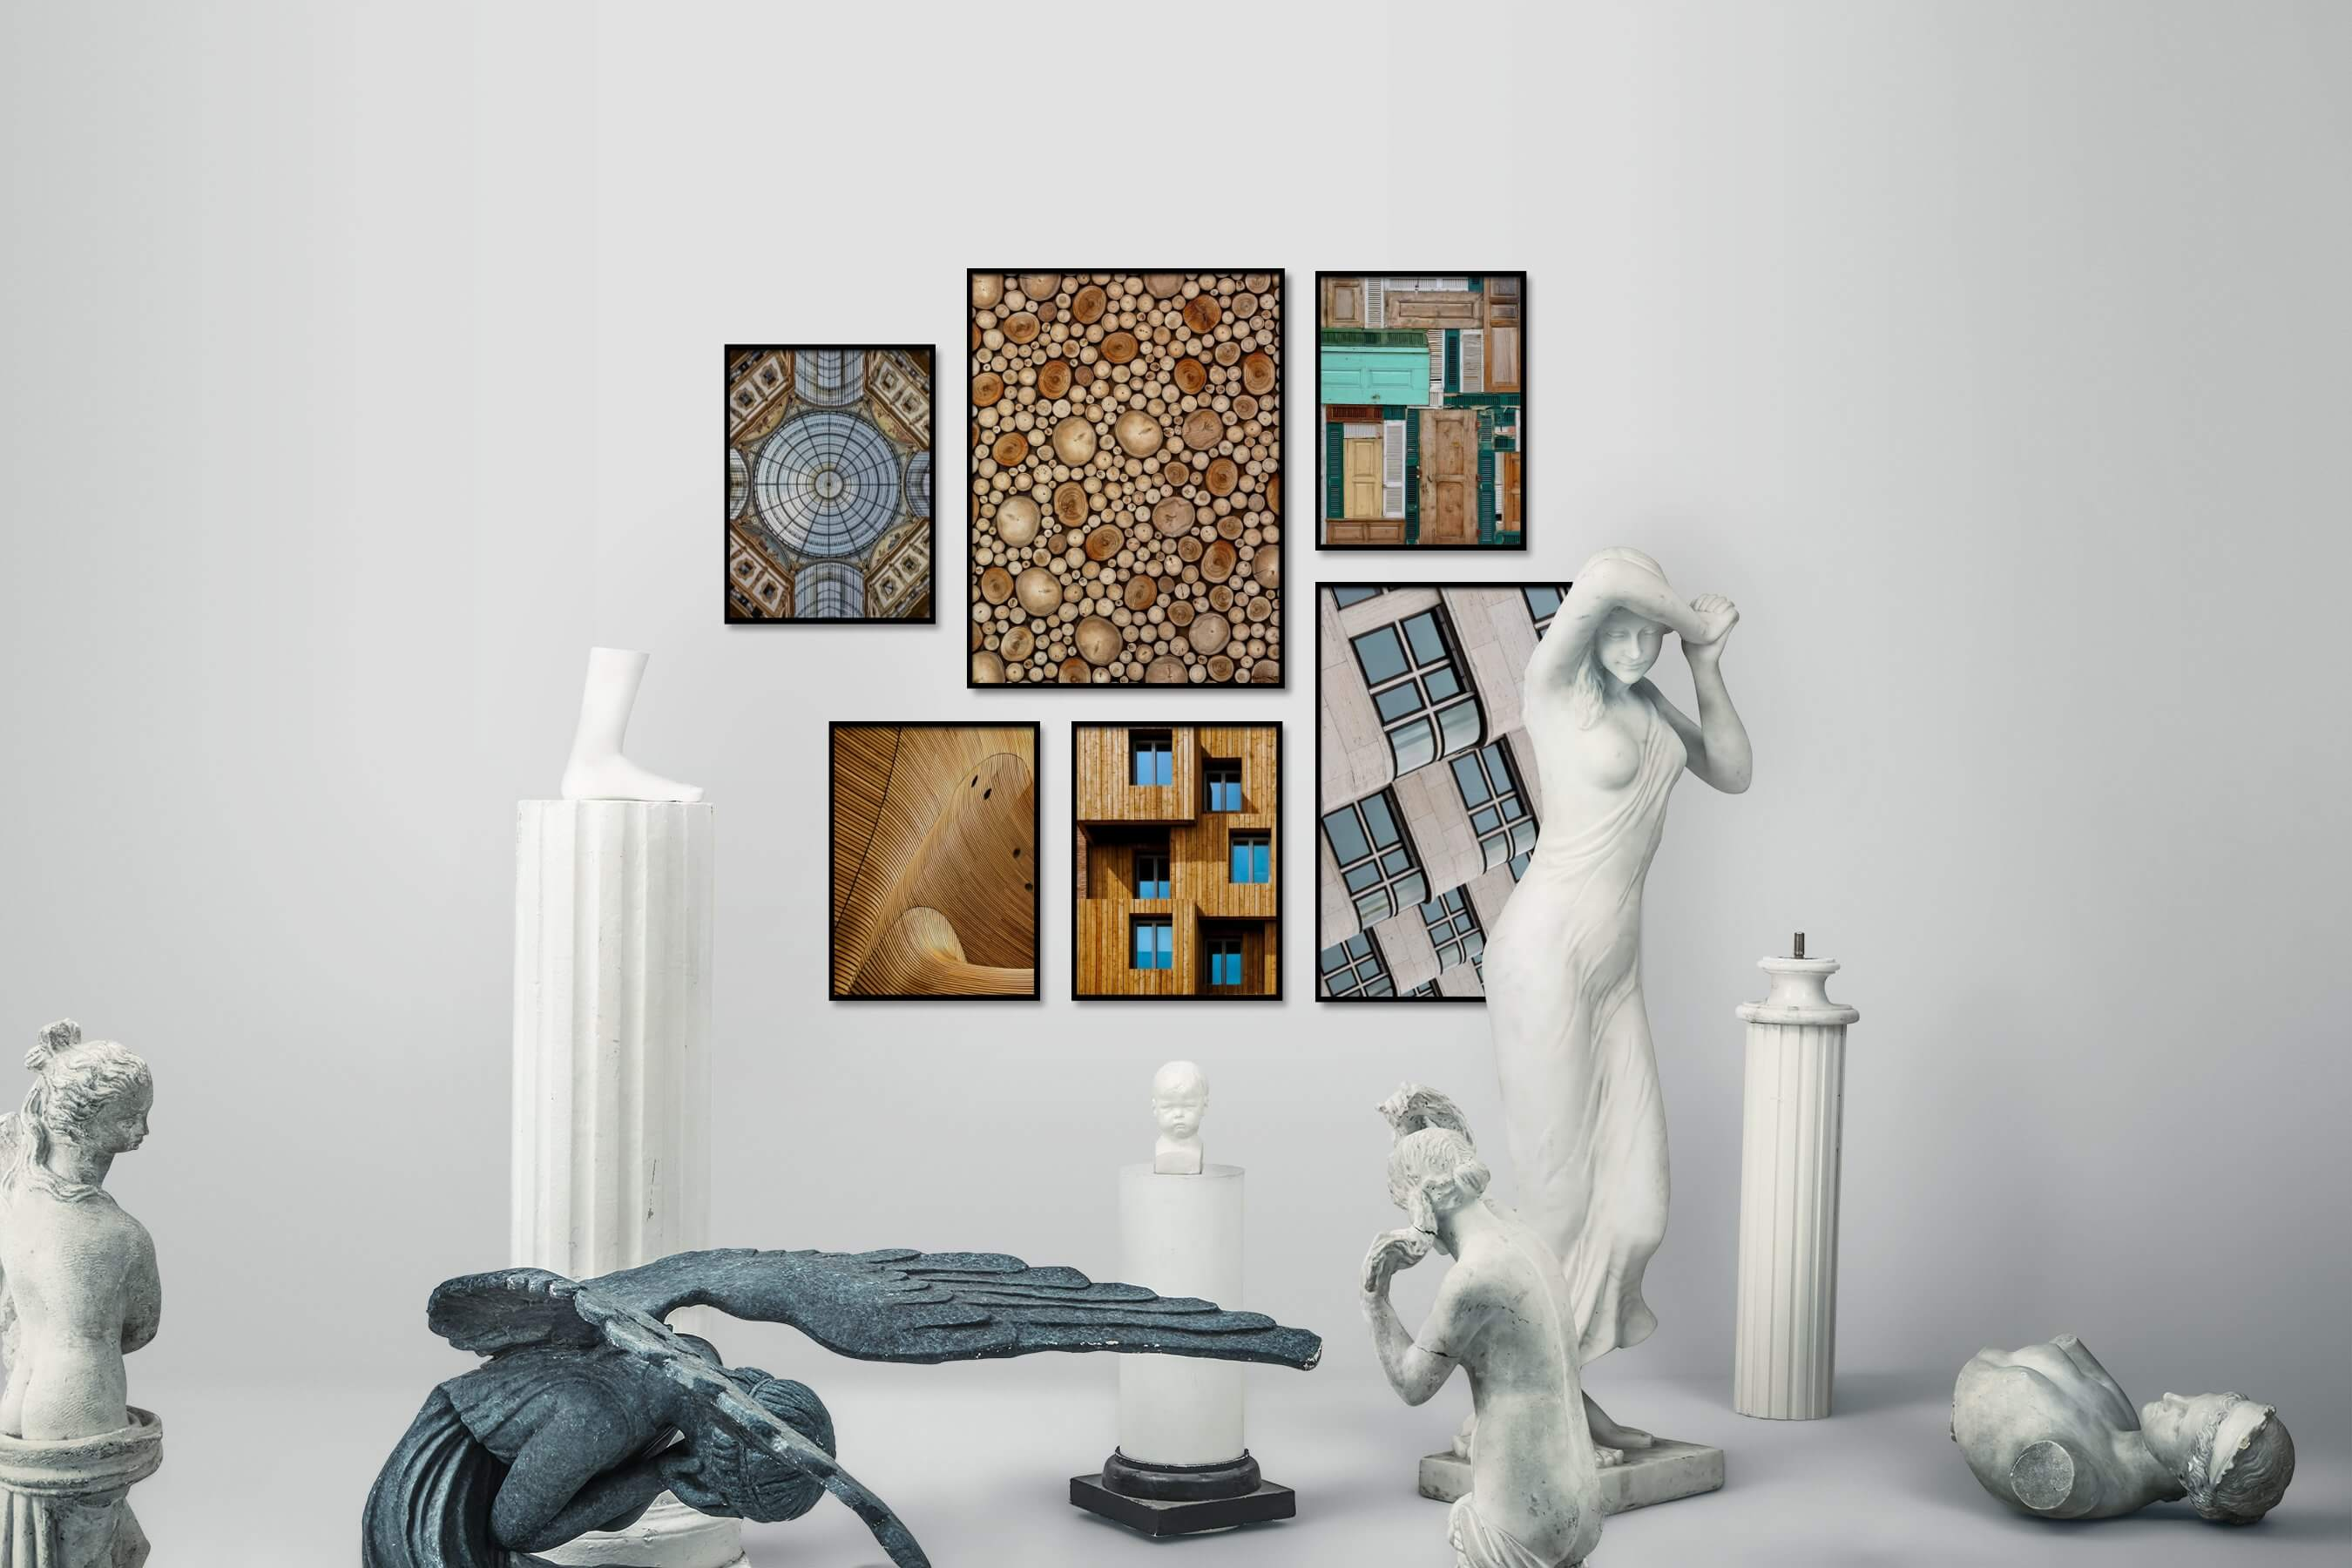 Gallery wall idea with six framed pictures arranged on a wall depicting For the Maximalist, Vintage, For the Moderate, City Life, and Colorful